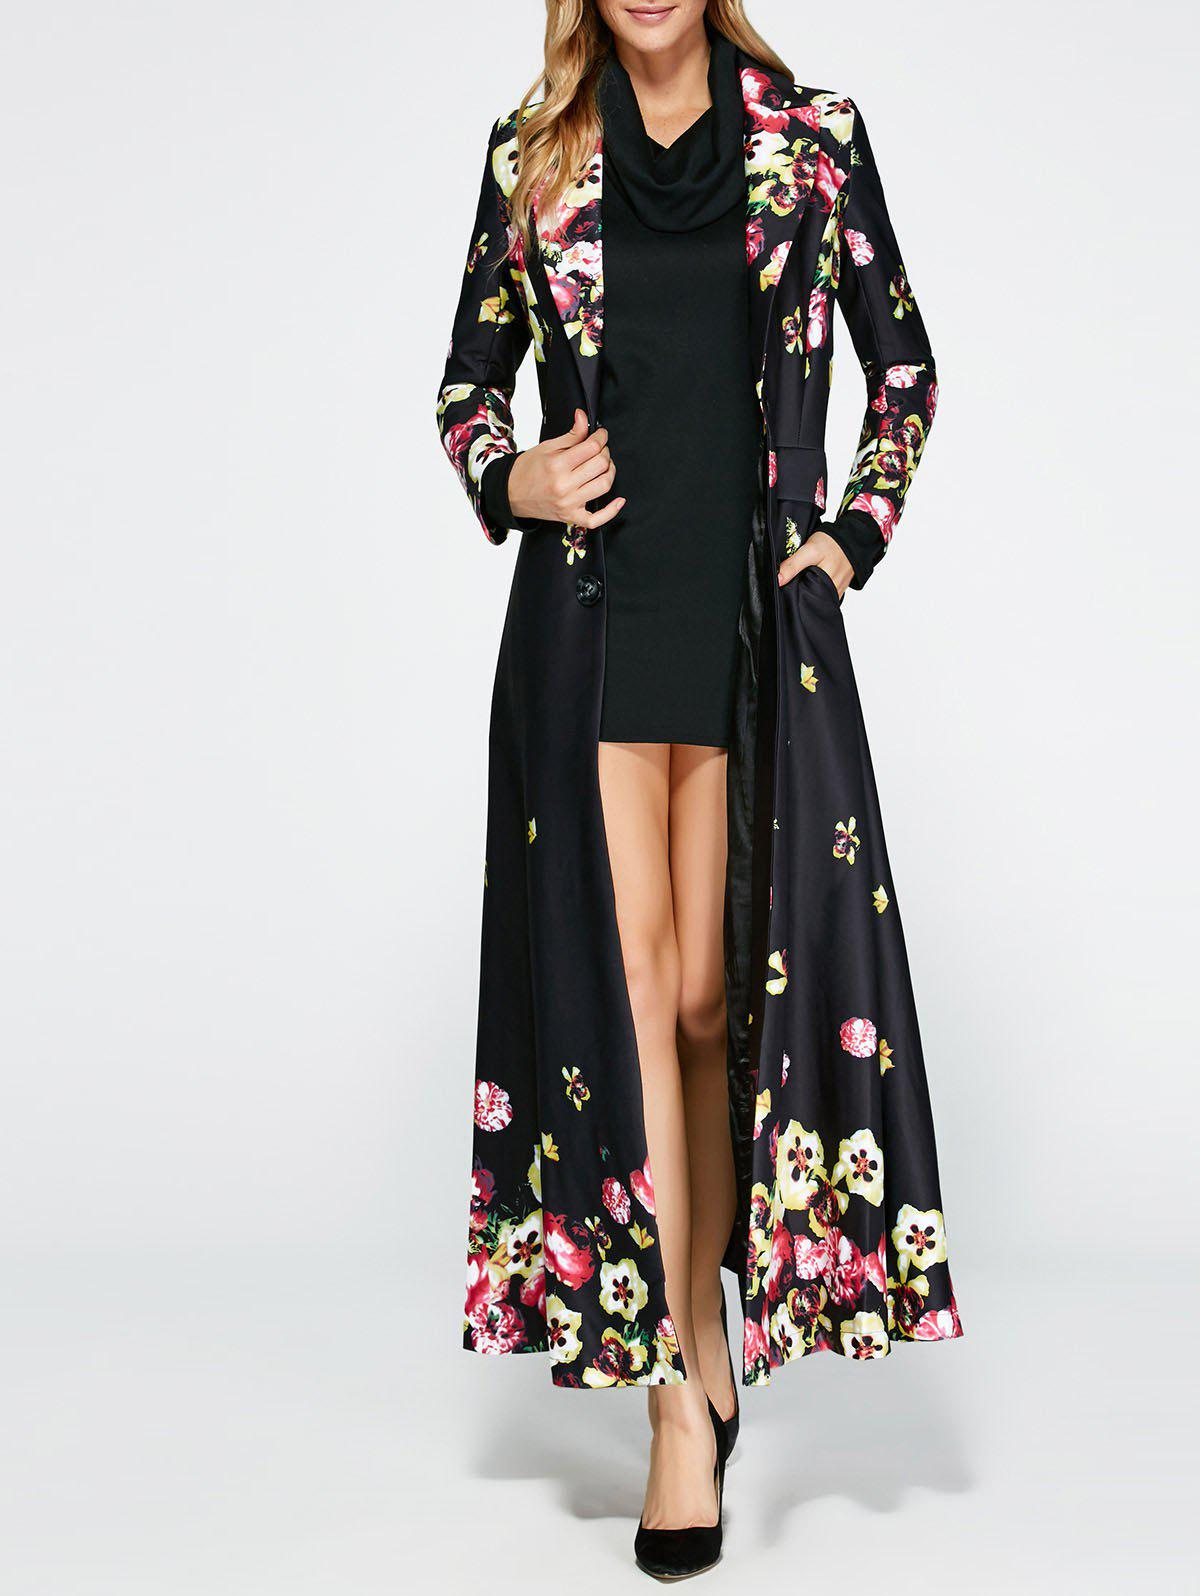 e27bcc08ea457 2019 Floral Print Vintage Trench Coat Dress